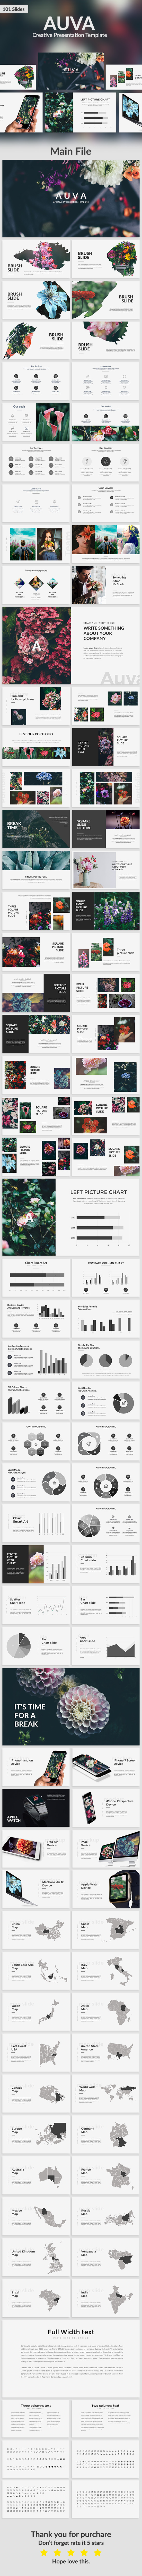 Auva - Creative Google Slide Template - Google Slides Presentation Templates